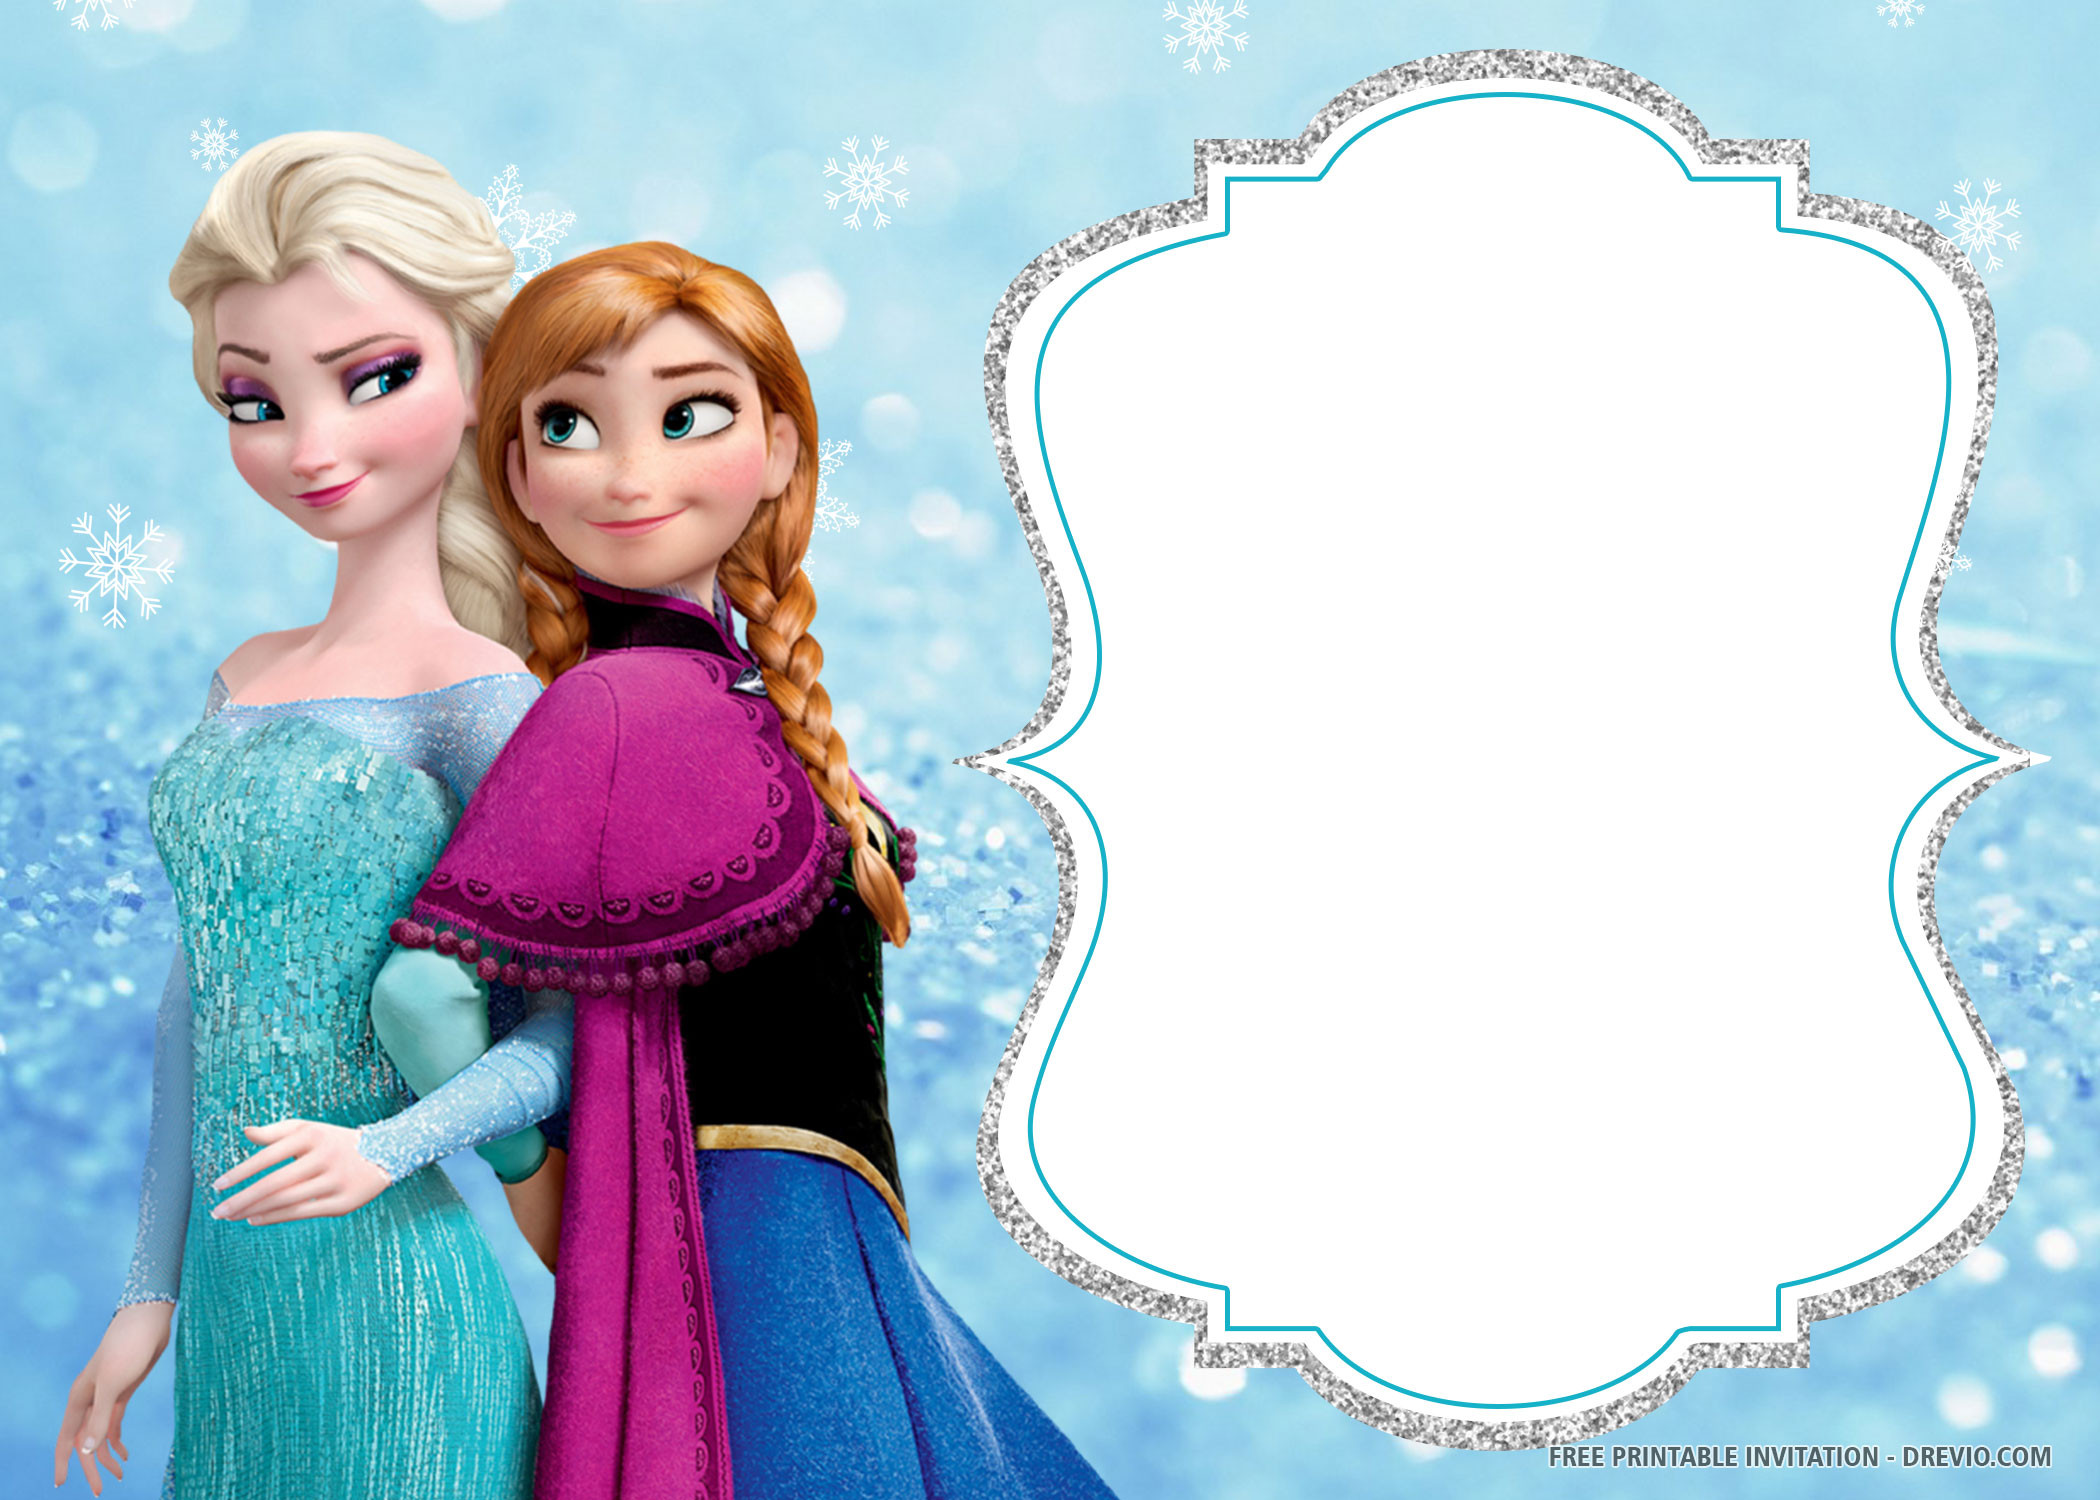 Frozen Printable Birthday Invitations Free Printable Frozen Birthday Invitation Templates